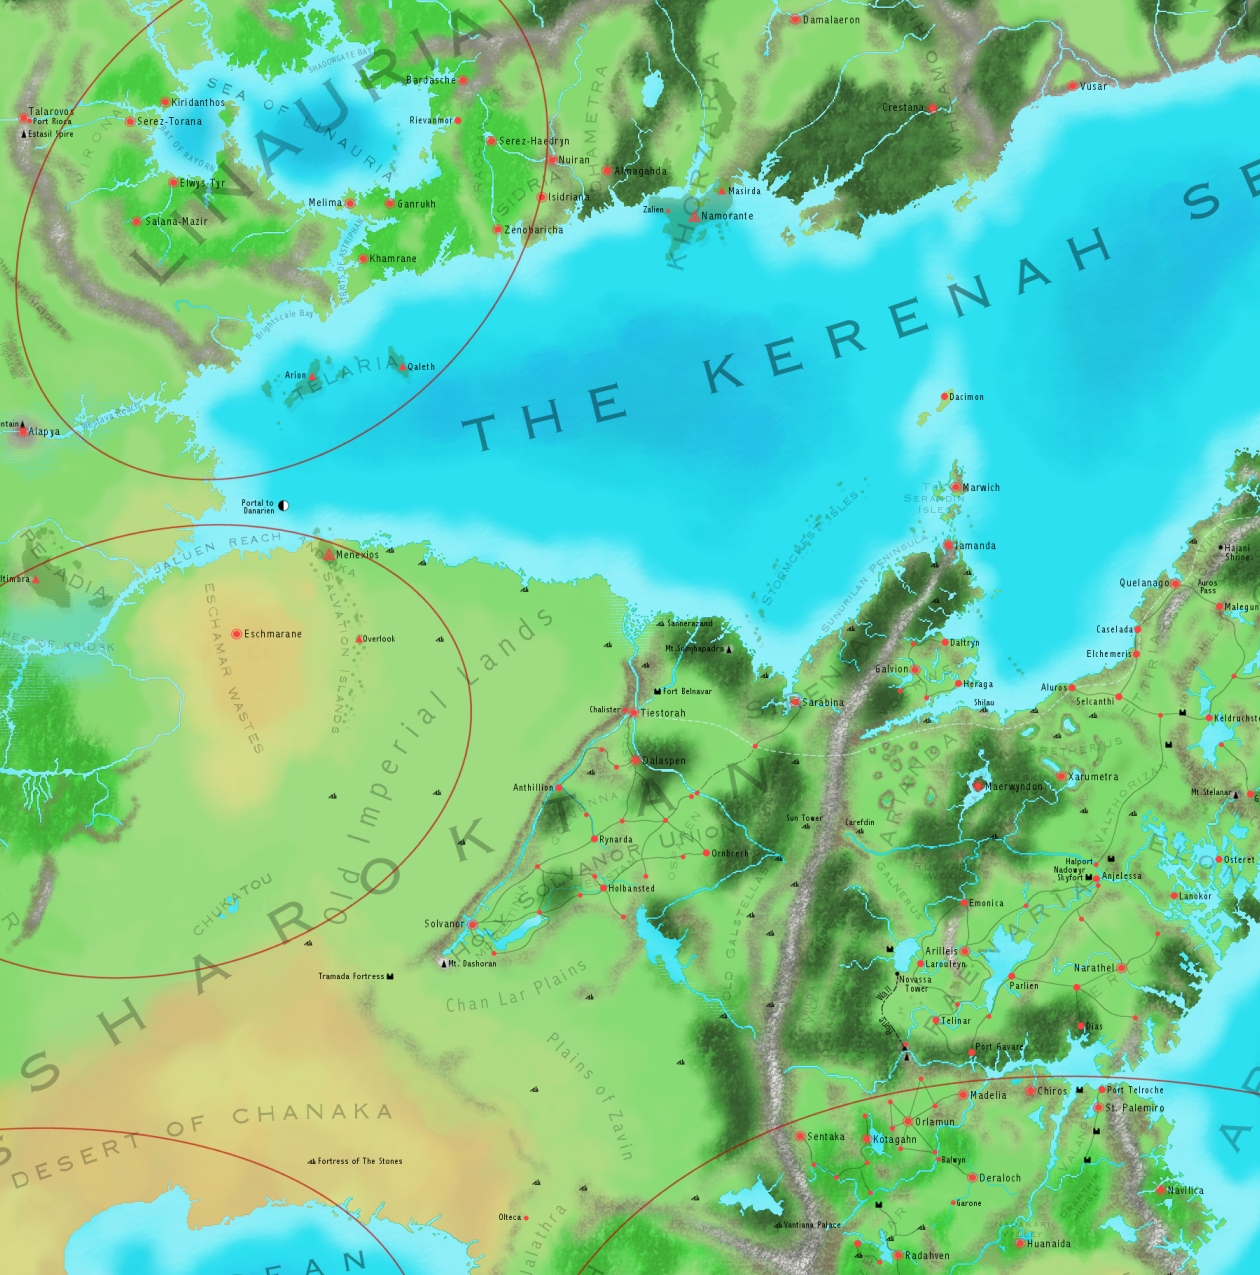 This is part of a world map I did for my last long-running campaign (which was a sort of cross between Final Fantasy and CB's Imajica!). I've re-sized and redrawn this one plenty of time so some of the rivers look a little jaggy to say the least. The semi-transparent areas a crude attempt to show floating landmasses. This is about 70 to 80% of the actual size - It's much more readable when I print the thing out! The style is pretty much based on a map from the back of the Final Fantasy 8 strategy guide by piggyback.